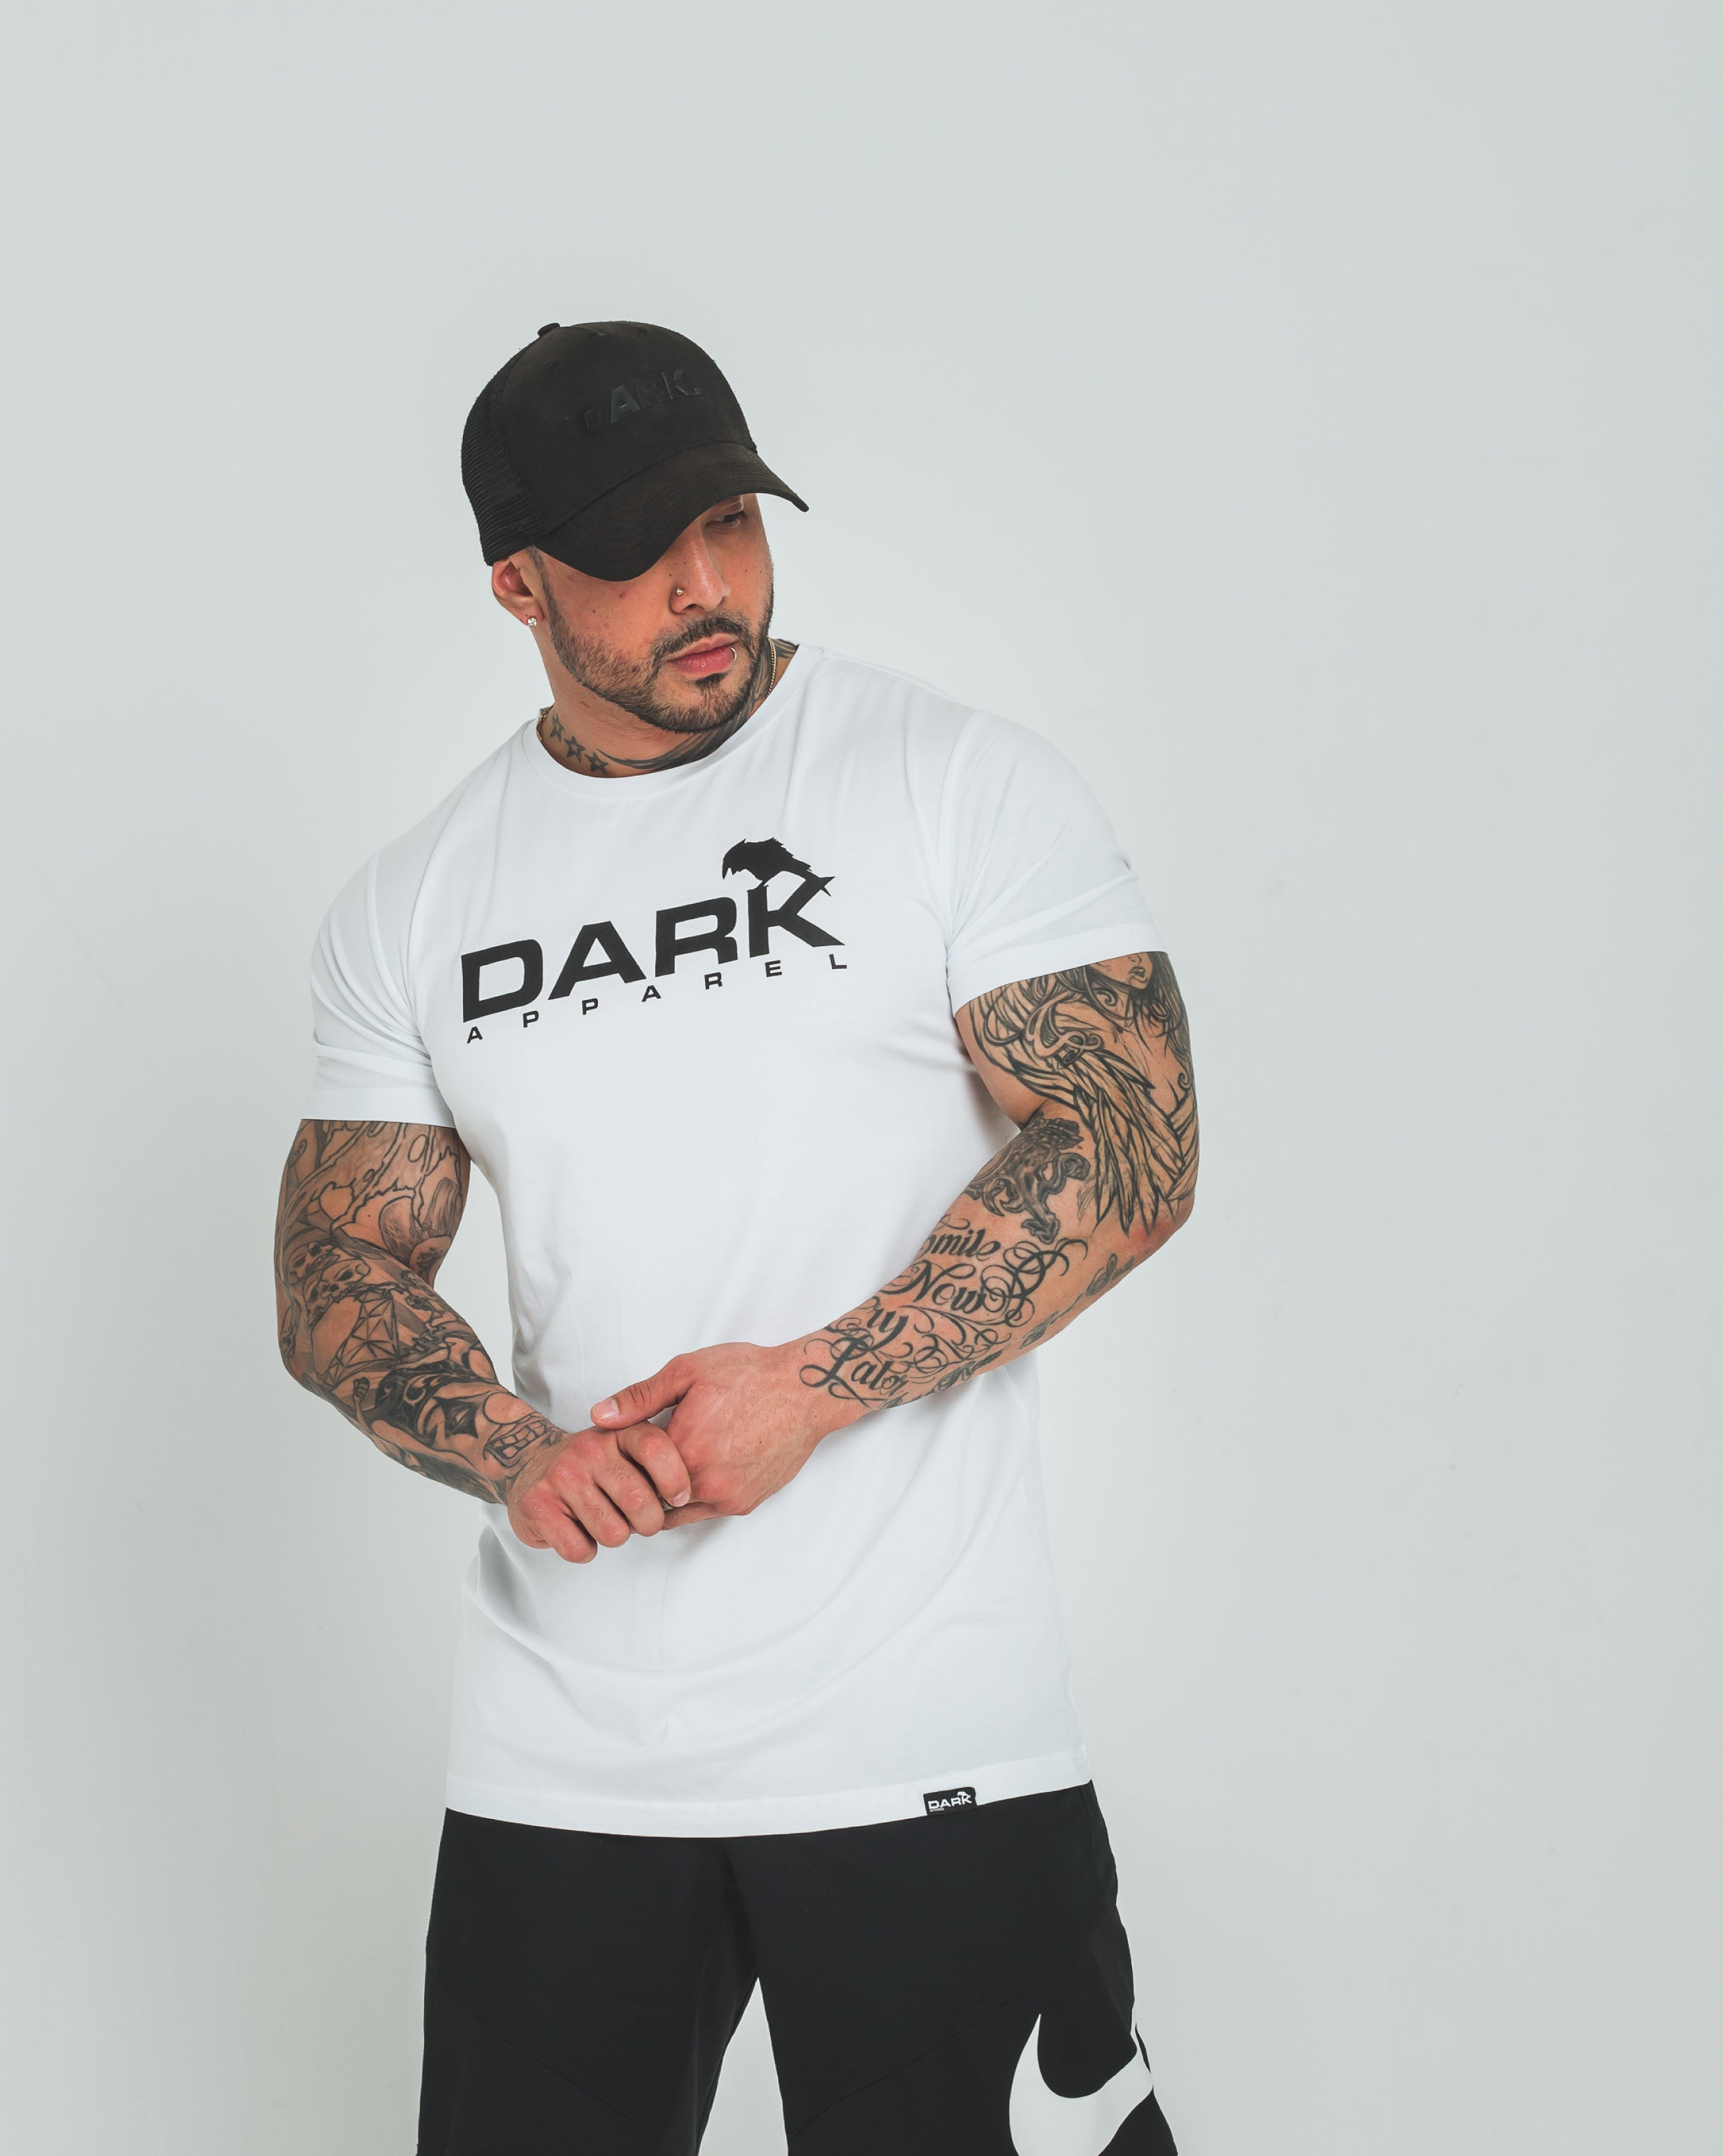 DARK APPAREL TEE - BLACK PRINT - Dark Apparel